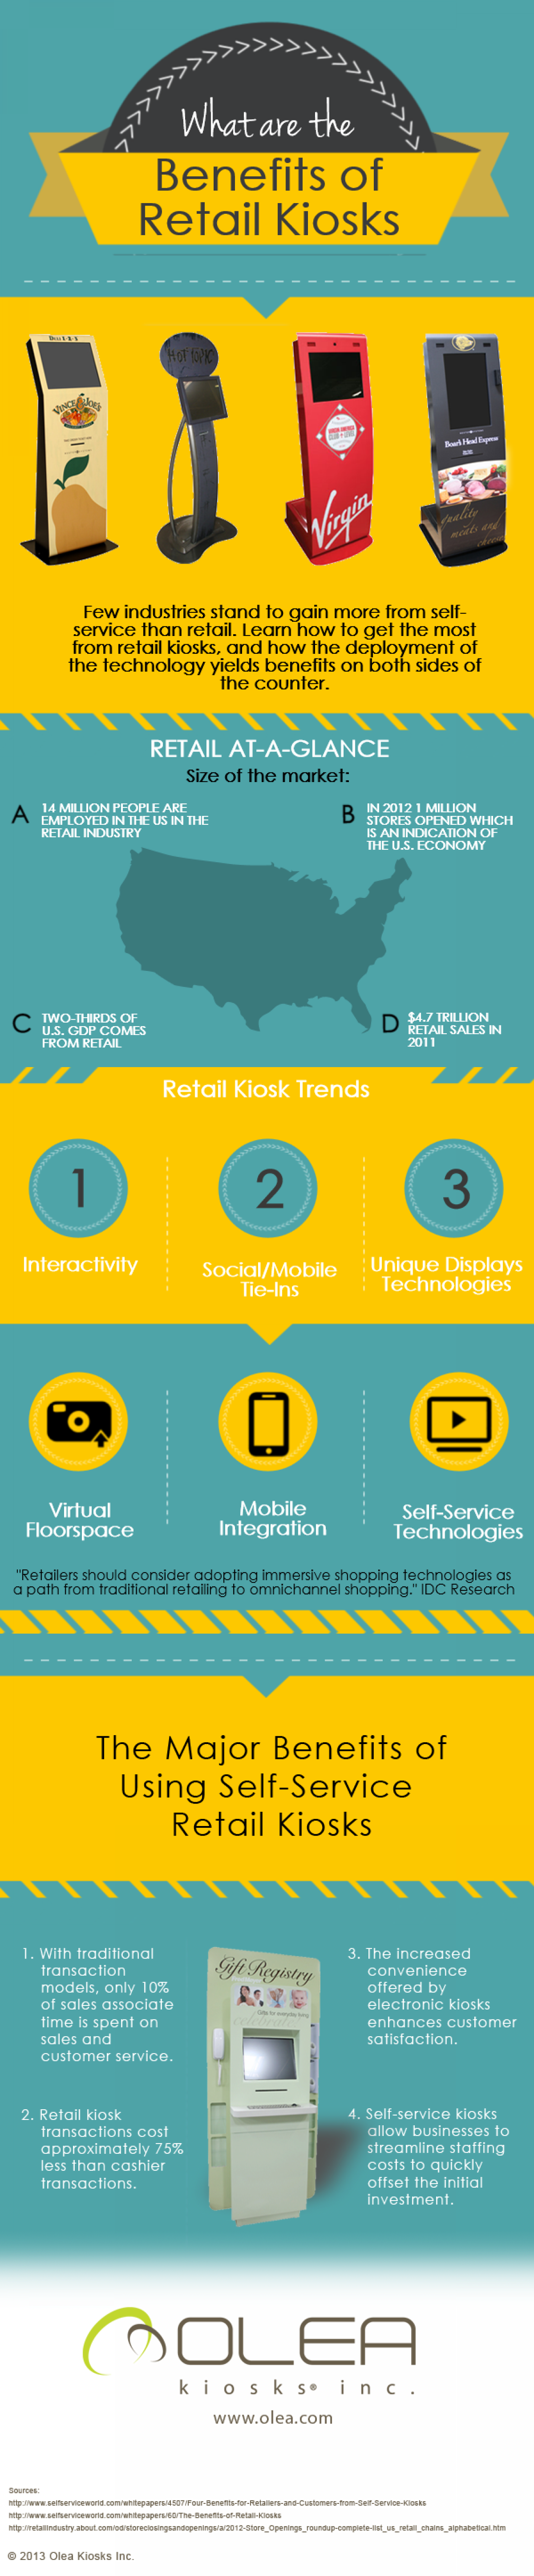 What Are The Benefits Of Retail Kiosks Infographic